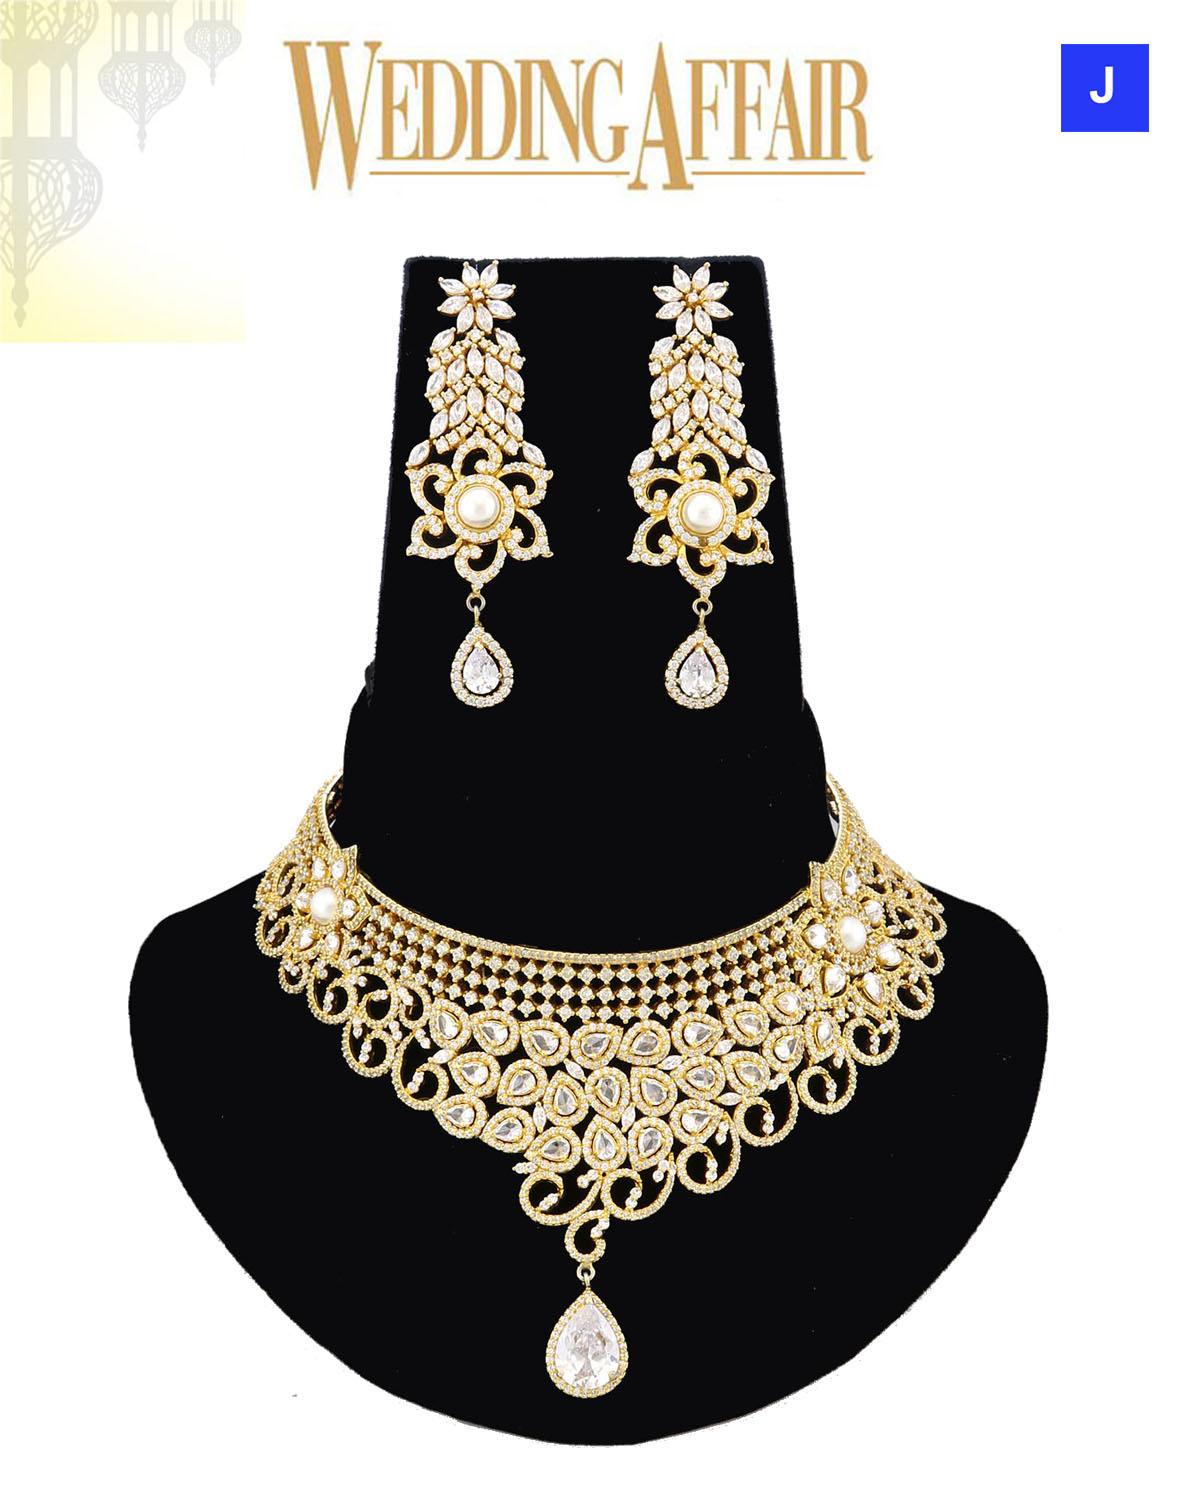 Premium & Exclusive collection of bridal jewellery on rent in Kundan, Diamonds, polka etc. with accessories Maang Tika,Haath phool,Nath etc. We also have Bridal jewellery, bridal jewelry, bridal jewellery on rent, bridal jewelry on rent, bridal jewellery on rent online, bridal jewellery rental, bridal jewelry rental, bridal jewellery sets on rent, jewellery on rent, jewellery for rent, jewelry on rent, jewelry for rent, jewellery rental, jewelry rental, bridal jewellery for rent, rent jewellery, rent jewelry, rent jewellery online, rent bridal jewellery, rent wedding jewellery, jewelry rent, wedding jewellery on rent, bridal jewellery on hire, Indian bridal jewellery, Indian bridal jewellery sets, artificial bridal jewellery, kundan bridal jewellery, see more, see more lal quarter, see more lal quarter Krishna nagar. We also provide bridal jewellery on rent in areas like east delhi, bridal jewellery on rent in  south delhi, bridal jewellery on rent in  north delhi, bridal jewellery on rent in  west delhi, bridal jewellery on rent in  central delhi, bridal jewellery on rent in  noida, bridal jewellery on rent in  gurgaon, bridal jewellery on rent in  delhi/ncr, bridal jewellery on rent in  connaught place, bridal jewellery on rent in  chandni chowk, bridal jewellery on rent in  karol bagh, bridal jewellery on rent in  sarojini nagar, bridal jewellery on rent in  khan market, bridal jewellery on rent in  lajpat nagar, bridal jewellery on rent in  central market, bridal jewellery on rent in  khan market, bridal jewellery on rent in  hauz khas, bridal jewellery on rent in  south extension, bridal jewellery on rent in  Nehru place, bridal jewellery on rent in  daryaganj, bridal jewellery on rent in  Gandhi nagar, bridal jewellery on rent in  rajouri garden, bridal jewellery on rent in  tilak nagar, bridal jewellery on rent in  Krishna nagar, bridal jewellery on rent in  lal quarter, bridal jewellery on rent in  kalkaji main market, bridal jewellery on rent in  laxmi nagar, bridal jewellery on rent in  mayur vihar, bridal jewellery on rent in  shahdara, bridal jewellery on rent in  Port Blair, bridal jewellery on rent in  Vishakhapatnam, bridal jewellery on rent in  Tirupati, bridal jewellery on rent in  Kakinada, bridal jewellery on rent in  Pasighat, bridal jewellery on rent in  Guwahati, bridal jewellery on rent in  Muzaffarpur, bridal jewellery on rent in  Bhagalpur, bridal jewellery on rent in  Biharsharif, bridal jewellery on rent in  Chandigarh, bridal jewellery on rent in  Raipur, bridal jewellery on rent in  Bilaspur, bridal jewellery on rent in  Diu, bridal jewellery on rent in  Silvassa, bridal jewellery on rent in  NDMC, bridal jewellery on rent in  Panaji, bridal jewellery on rent in  Gandhinagar, bridal jewellery on rent in  Ahmedabad, bridal jewellery on rent in  Surat, bridal jewellery on rent in  Vadodara, bridal jewellery on rent in  Rajkot, bridal jewellery on rent in  Dahod, bridal jewellery on rent in  Karnal, bridal jewellery on rent in  Faridabad, bridal jewellery on rent in  Dharamsala, bridal jewellery on rent in  Ranchi, bridal jewellery on rent in  Mangaluru, bridal jewellery on rent in  Belagavi, bridal jewellery on rent in  Shivamogga, bridal jewellery on rent in  Hubballi-Dharwad, bridal jewellery on rent in  Tumakuru, bridal jewellery on rent in  Davanegere, bridal jewellery on rent in  Kochi, bridal jewellery on rent in  Kavaratti, bridal jewellery on rent in  Bhopal, bridal jewellery on rent in  Indore, bridal jewellery on rent in  Jabalpur, bridal jewellery on rent in  Gwalior, bridal jewellery on rent in  Sagar, bridal jewellery on rent in  Satna, bridal jewellery on rent in  Ujjain, bridal jewellery on rent in  Navi Mumbai, bridal jewellery on rent in  Nasik, bridal jewellery on rent in  Thane, bridal jewellery on rent in  Greater Mumbai, bridal jewellery on rent in  Amaravati, bridal jewellery on rent in  Solapur, bridal jewellery on rent in  Nagpur, bridal jewellery on rent in  Kalyan-Dombivalli, bridal jewellery on rent in  Aurangabad, bridal jewellery on rent in  Pune, bridal jewellery on rent in  Imphal, bridal jewellery on rent in  Shillong, bridal jewellery on rent in  Aizawl, bridal jewellery on rent in  Kohima, bridal jewellery on rent in  Bhubaneswar, bridal jewellery on rent in  Rourkela, bridal jewellery on rent in  Oulgaret, bridal jewellery on rent in  Ludhiana, bridal jewellery on rent in  Jalandhar, bridal jewellery on rent in  Amritsar, bridal jewellery on rent in  Jaipur, bridal jewellery on rent in  Udaipur, bridal jewellery on rent in  Kota, bridal jewellery on rent in  Ajmer, bridal jewellery on rent in  Namchi, bridal jewellery on rent in  Tiruchirapalli, bridal jewellery on rent in  Tirunelveli, bridal jewellery on rent in  Dindigul, bridal jewellery on rent in  Thanjavur, bridal jewellery on rent in  Tiruppur, bridal jewellery on rent in  Salem, bridal jewellery on rent in  Vellore, bridal jewellery on rent in  Coimbatore, bridal jewellery on rent in  Madurai, bridal jewellery on rent in  Erode, bridal jewellery on rent in  Thoothukudi, bridal jewellery on rent in  Chennai, bridal jewellery on rent in  Greater Hyderabad, bridal jewellery on rent in  Greater warangal, bridal jewellery on rent in  Agartala, bridal jewellery on rent in  Moradabad, bridal jewellery on rent in  Aligarh, bridal jewellery on rent in  Shaharanpur, bridal jewellery on rent in  Bareilly, bridal jewellery on rent in  Jhansi, bridal jewellery on rent in  Kanpur, bridal jewellery on rent in  Allahabad, bridal jewellery on rent in  Lucknow, bridal jewellery on rent in  Varanasi, bridal jewellery on rent in  Ghaziabad, bridal jewellery on rent in  Agra, bridal jewellery on rent in  Rampur, bridal jewellery on rent in  Dehradun, bridal jewellery on rent in  New Town Kolkata, bridal jewellery on rent in  Bidhannagar, bridal jewellery on rent in  Durgapur, bridal jewellery on rent in  Haldia, bridal jewellery on rent in  Mumbai, bridal jewellery on rent in  kolkatta, bridal jewellery on rent in  delhi. We also have kundan bridal jewellery, ad bridal jewellery, American diamond bridal jewellery, diamond bridal jewellery, polka bridal jewellery etc.  Ae also have Bridal jewellery  bridal jewelry  bridal jewellery on rent  bridal jewelry on rent  bridal jewellery on rent online  bridal jewellery rental  bridal jewelry rental  bridal jewellery sets on rent  jewellery on rent  jewellery for rent  jewelry on rent  jewelry for rent  jewellery rental  jewelry rental  bridal jewellery for rent  rent jewellery  rent jewelry  rent jewellery online  rent bridal jewellery  rent wedding jewellery  jewelry rent  wedding jewellery on rent  bridal jewellery on hire, marriage jewellery set for rent, jewellery for rent, rent bridal jewelry, wedding jewellery for rent, rental bridal jewelry, rent a jewellery, bridal rental jewelry, jewelry for rent, artificial bridal jewellery, bridal jewelry renta, bridal jewellery designs, rent jewelry wedding, yashu singh, rent jewelry for wedding, beautiful bridal jewellery, rent wedding jewelry, jewellery delhi, rent diamond jewelry for wedding, design of bridal jewellery, rent wedding dress in delhi, wedding bridal jewellery sets, bridal jwelery, bridal jewellery, bridal jwelary, kundan bridal necklace, bridal jwellry, bridal jew, bridal jwellary, wedding jewelry rental, bridel jewellery, artificial wedding jewellery sets, rented jewellery, kundan wedding jewellery, bridal jewelers, bridal jwellery, complete bridal jewellery sets, adorn jewelry rental, designer bridal jewellery sets, bridal jewellary, artificial bridal set, rent jewelry, bridal jewellery set, bridal jewllery, rent jewelry, kundan jewellery delhi, bridal jewelleries, rent diamond jewelry, artificial jewellery bridal set, kundan bridal jewelry set, bridal jewels for rent in Coimbatore, bridal jewellery latest design, bridal jewellery sets, can you rent jewelry, rent diamond necklace, unique bridal jewelry sets, pics of bridal jewellery, artificial jewellery in delhi, bridal jewellery sets with price, rent in delhi, jewellers in west delhi, kundan wedding jewellery sets, bridal shopping delhi, bridal fashion jewellery sets, beautiful bridal jewelry, kundan bridal sets jewellery, artificial bridal jewellery sets, marriage jewellery